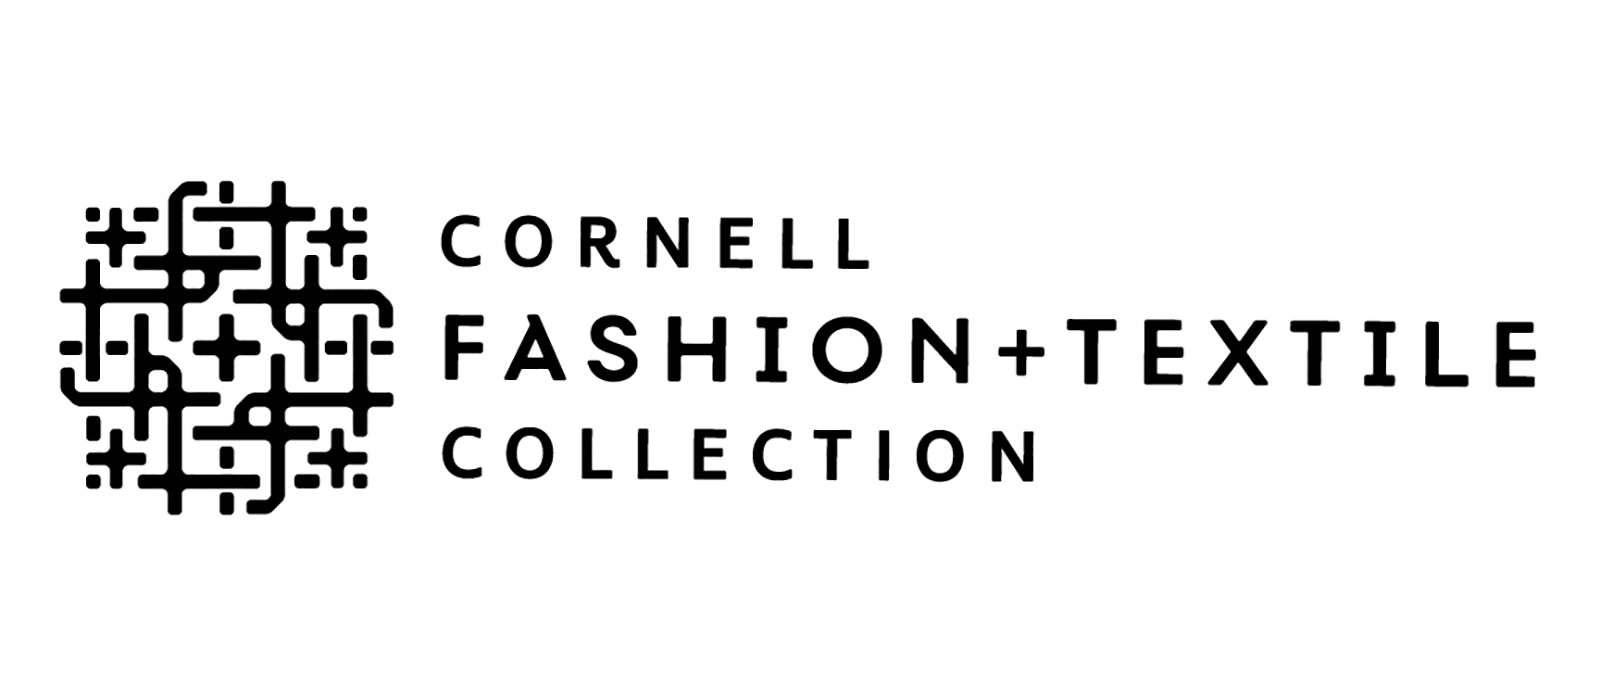 Cornell Fashion + Textile Collection logo